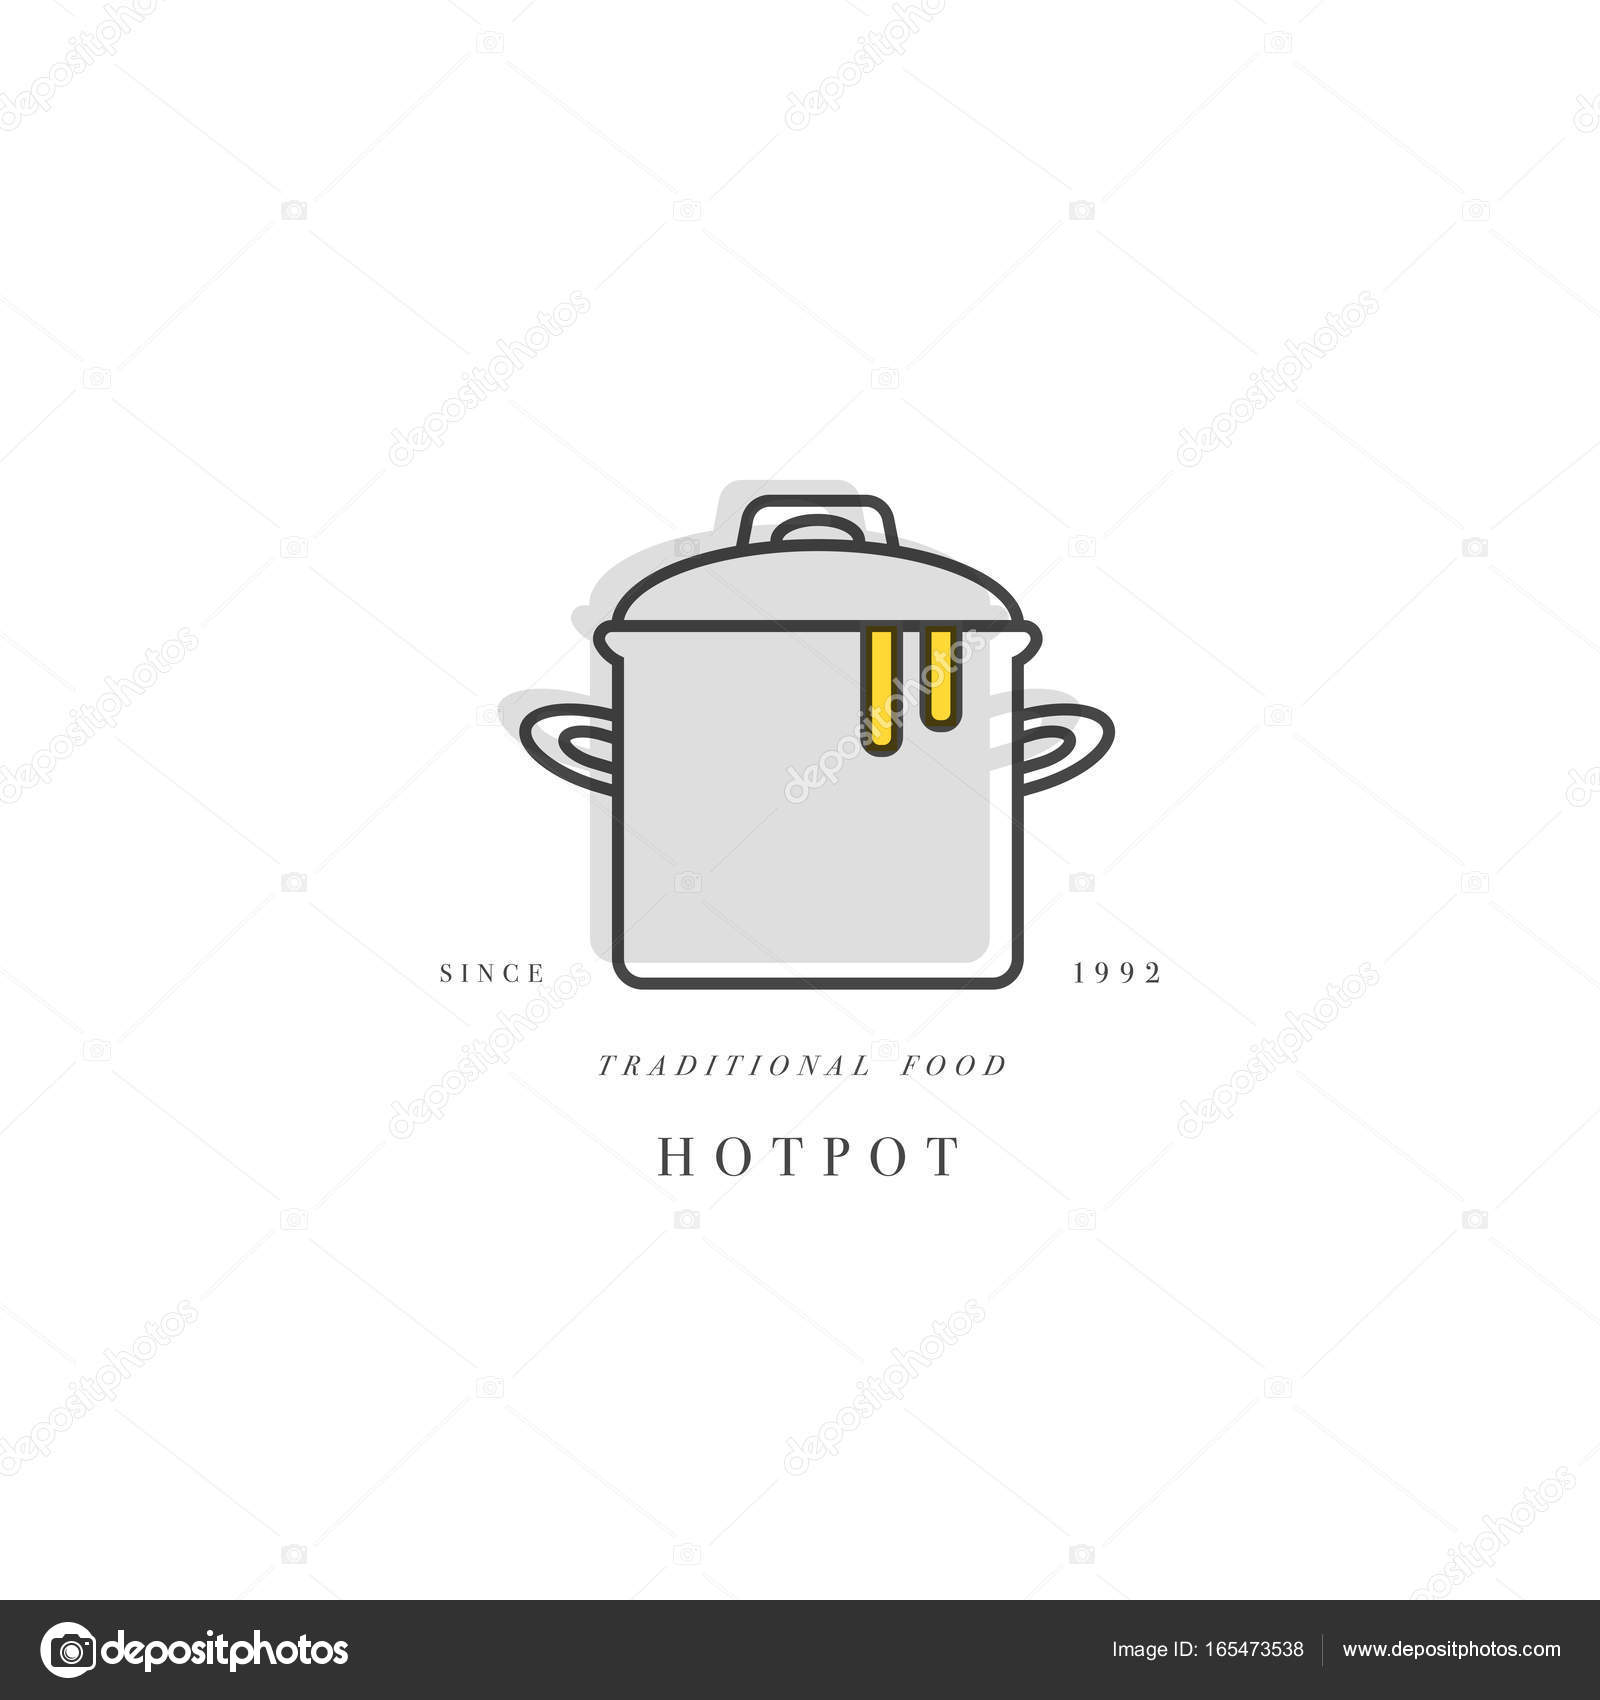 Cooking class linear design element kitchen emblem symbol icon cooking class linear design element kitchen emblem symbol icon or food cooking label hotpot icon pan vector by oxygen8 ccuart Image collections